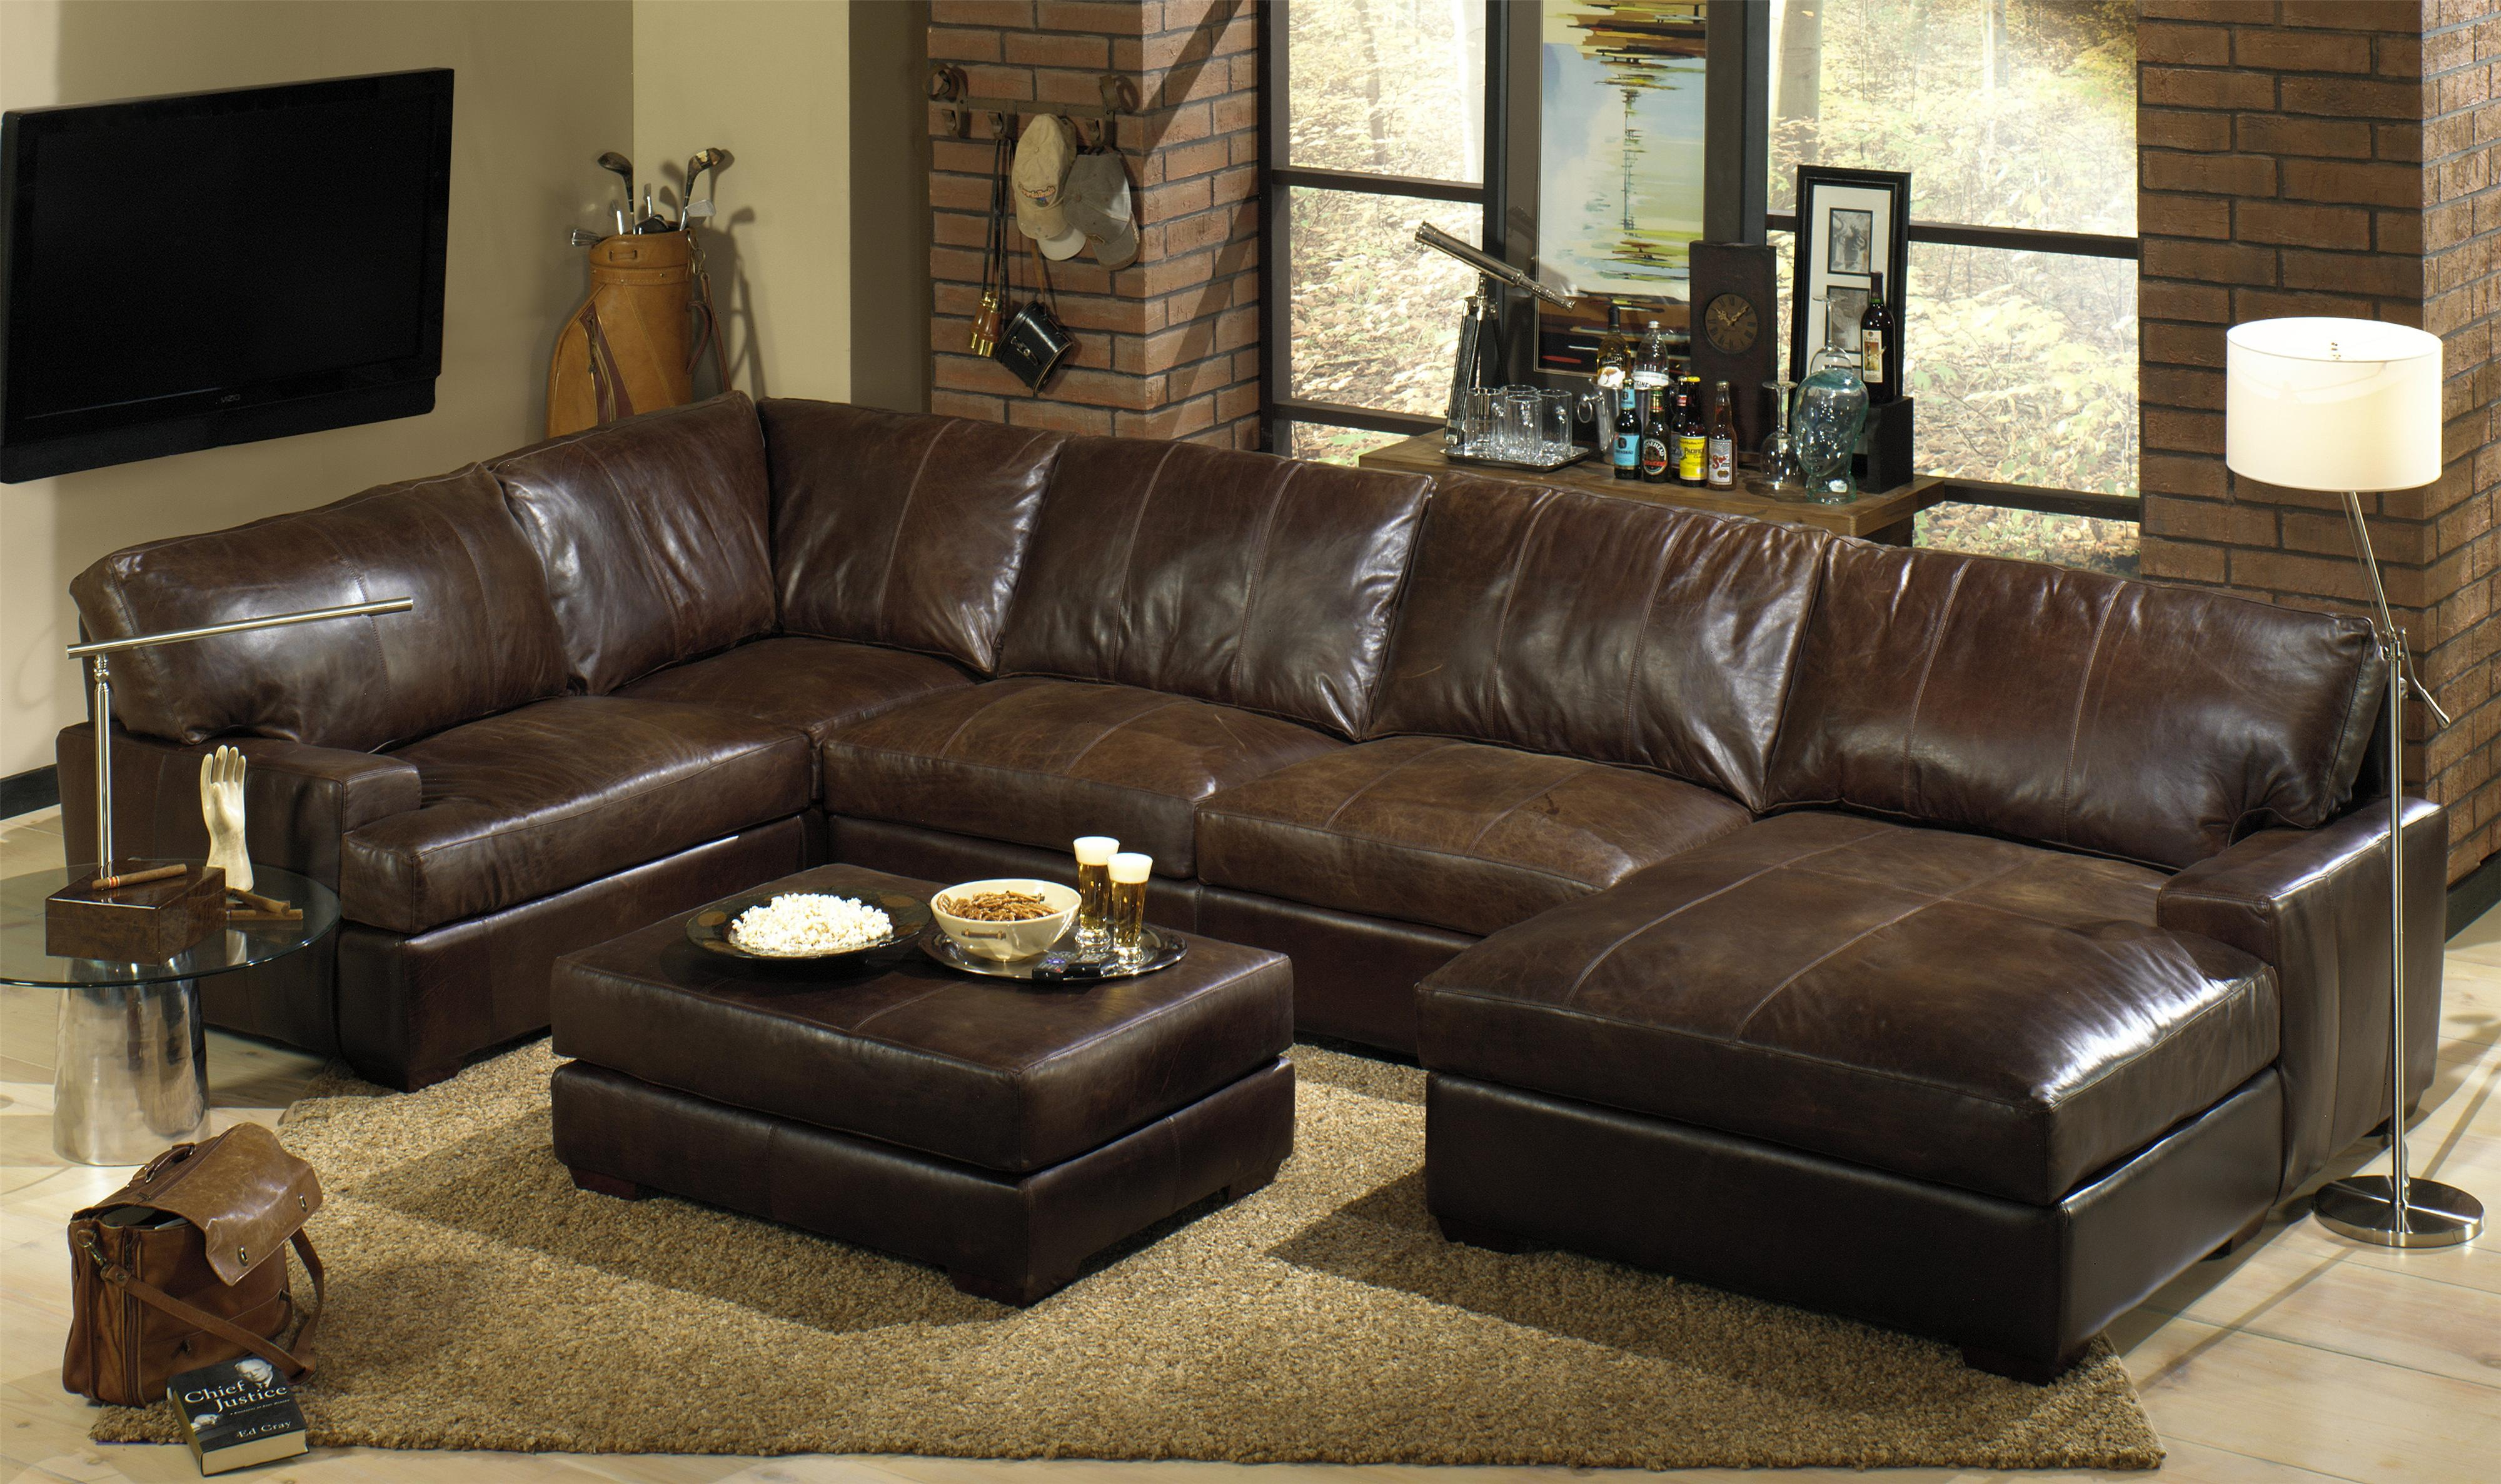 Large Sectional Sofas | Large Sectional Sofa with Chaise | Sectional with Sleeper